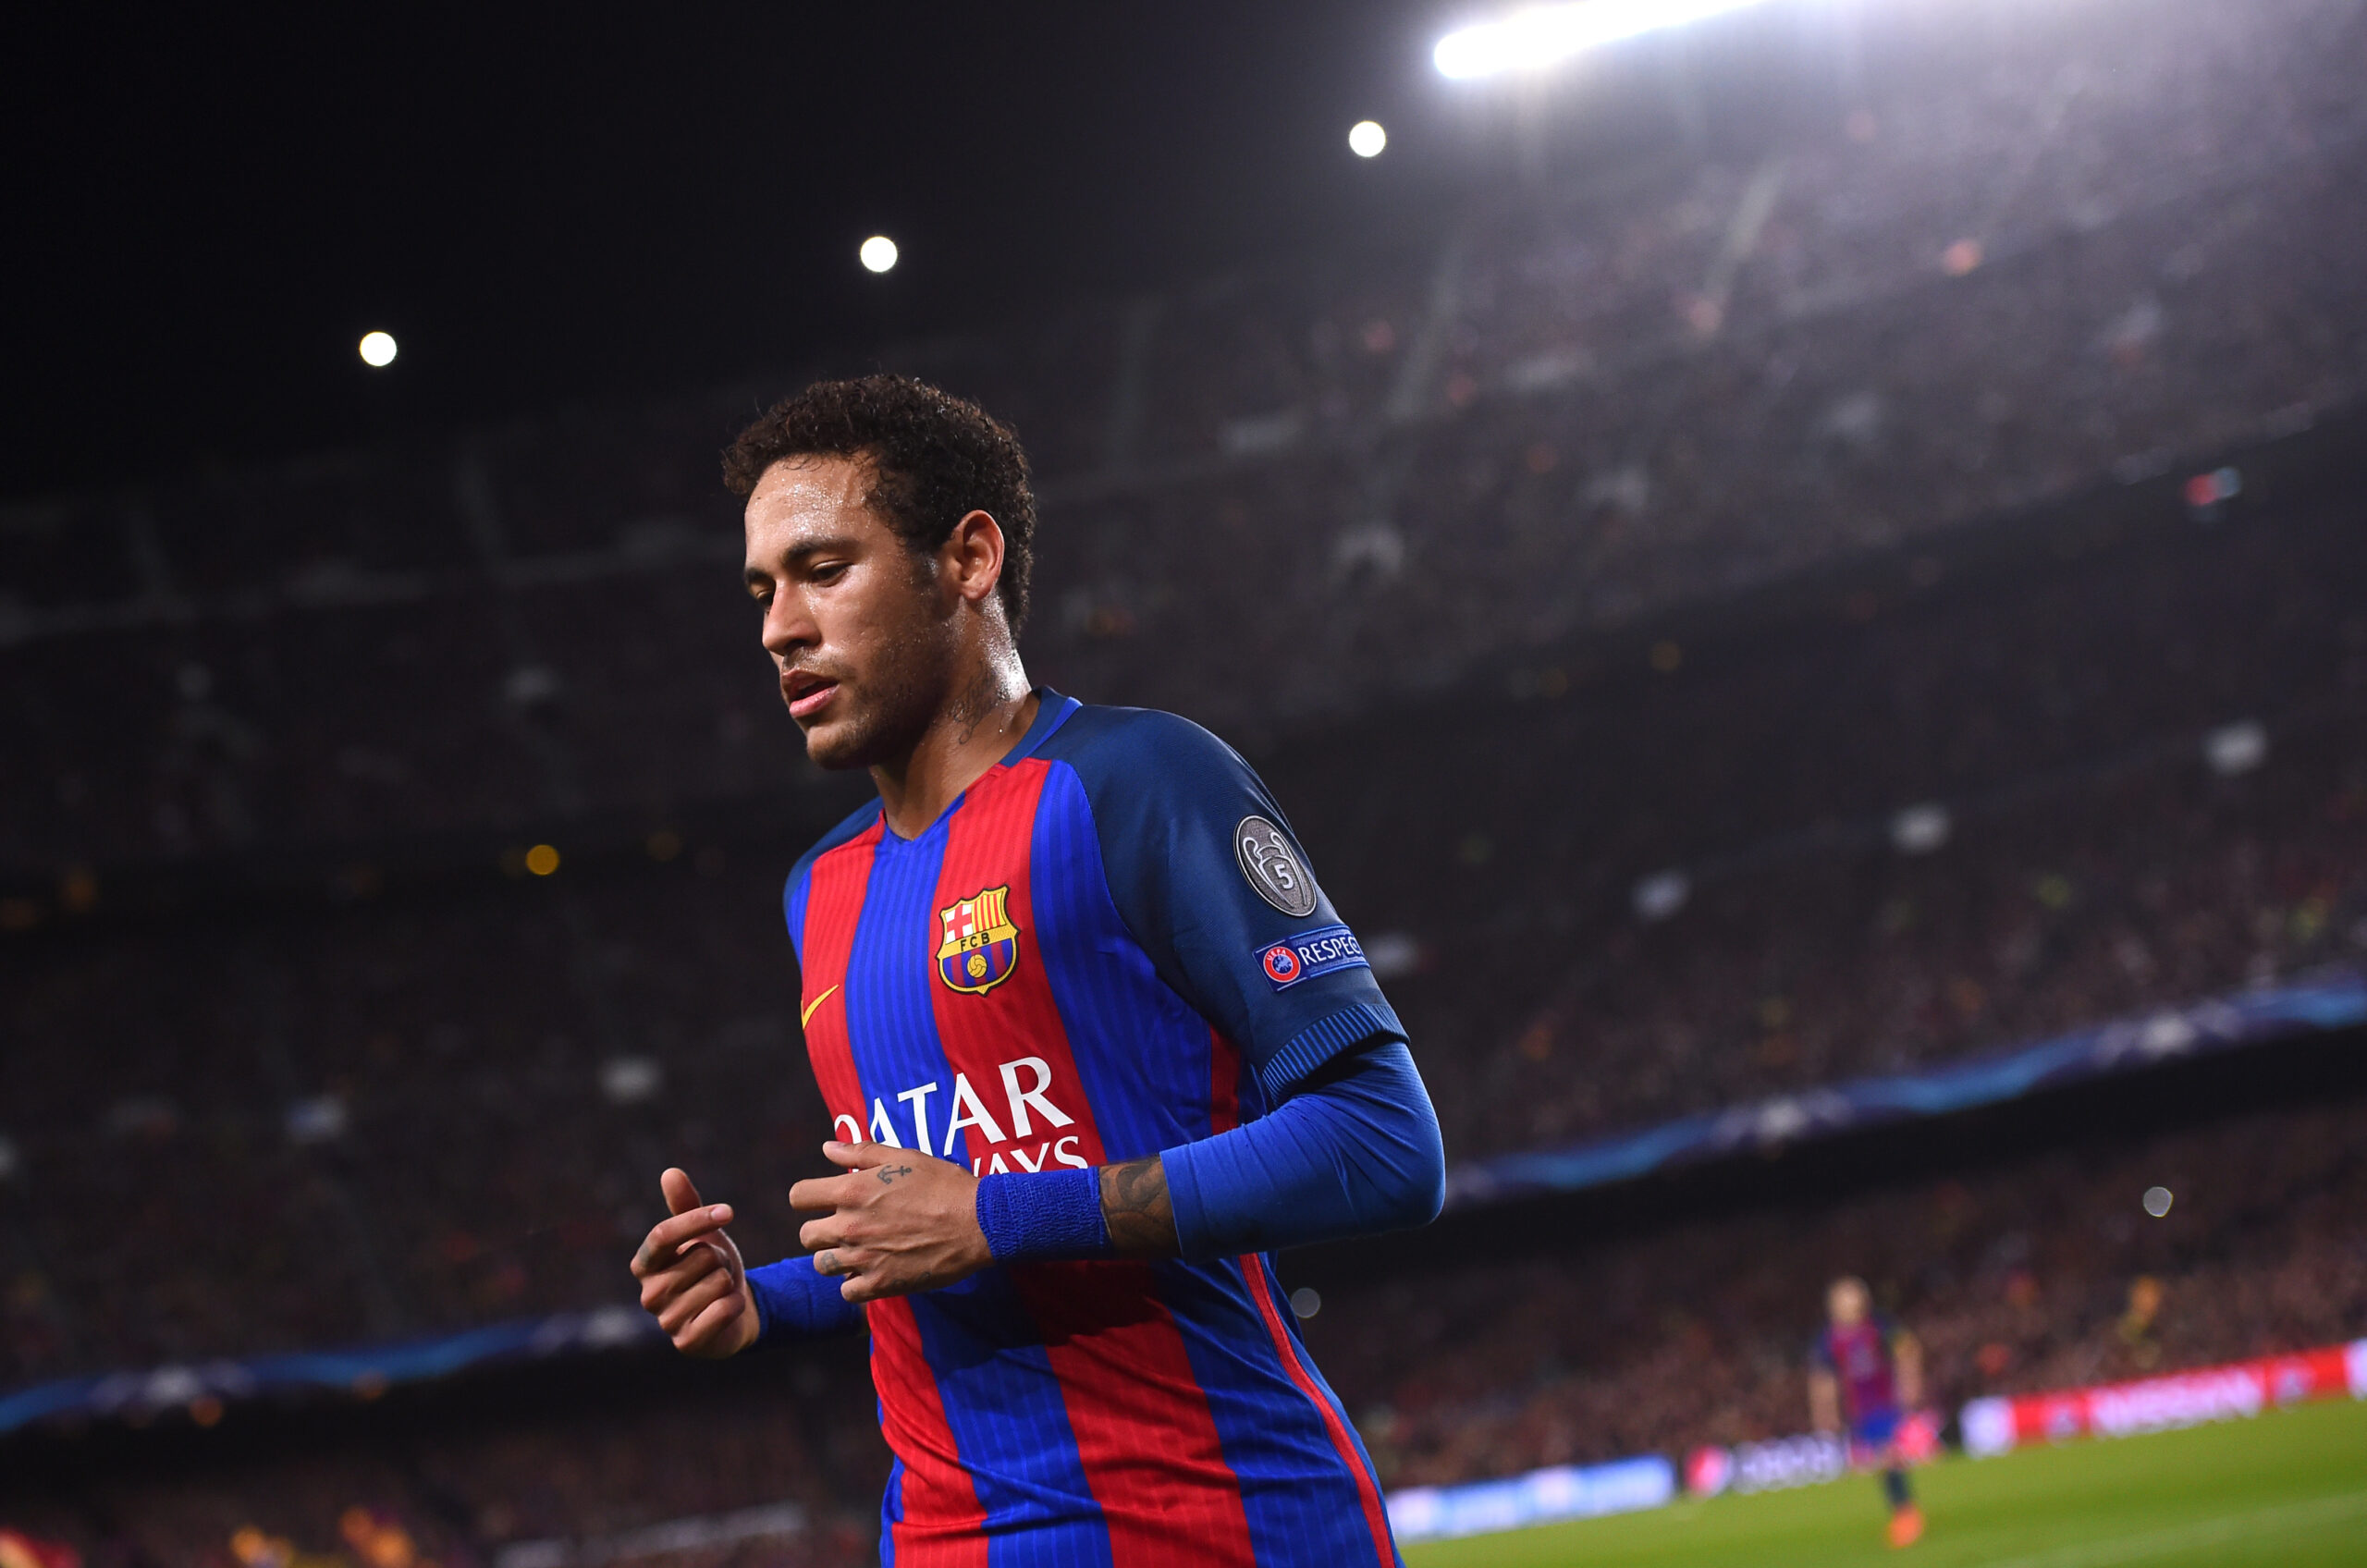 Barcelona's Brazilian forward Neymar leaves the pitch at the end of first half during the UEFA Champions League round of 16 second leg football match FC Barcelona vs Paris Saint-Germain FC at the Camp Nou stadium in Barcelona on March 8, 2017. / AFP PHOTO / Josep Lago